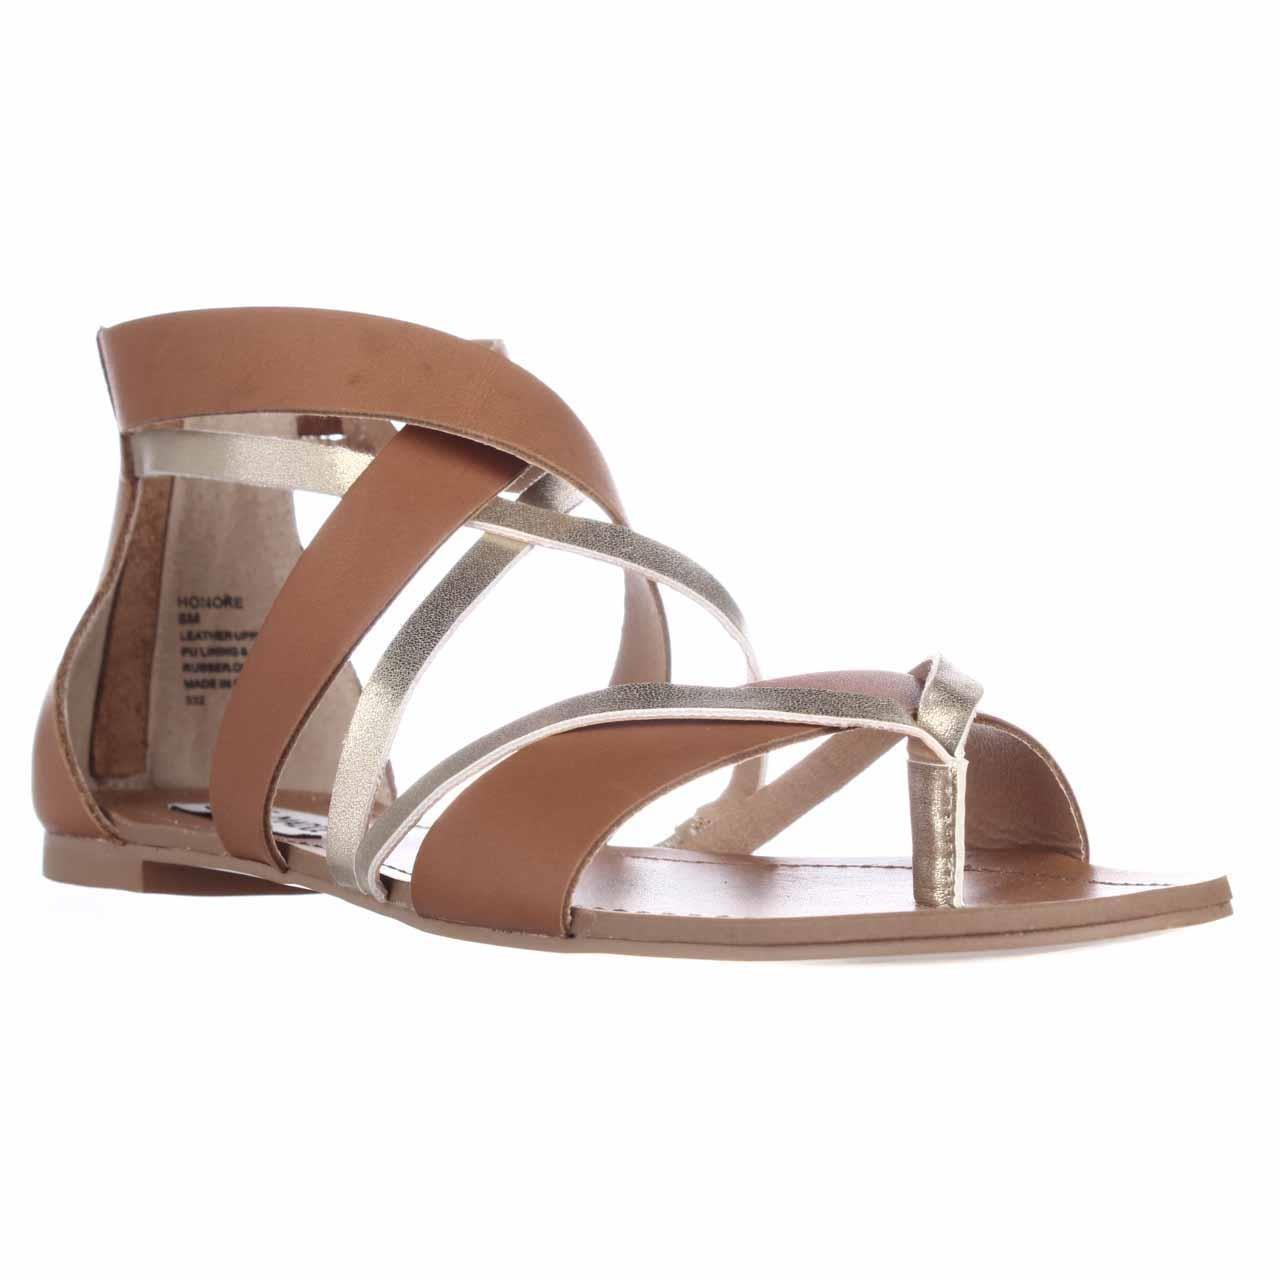 Steve Madden Honore Flat Gladiator Sandals In Brown Lyst